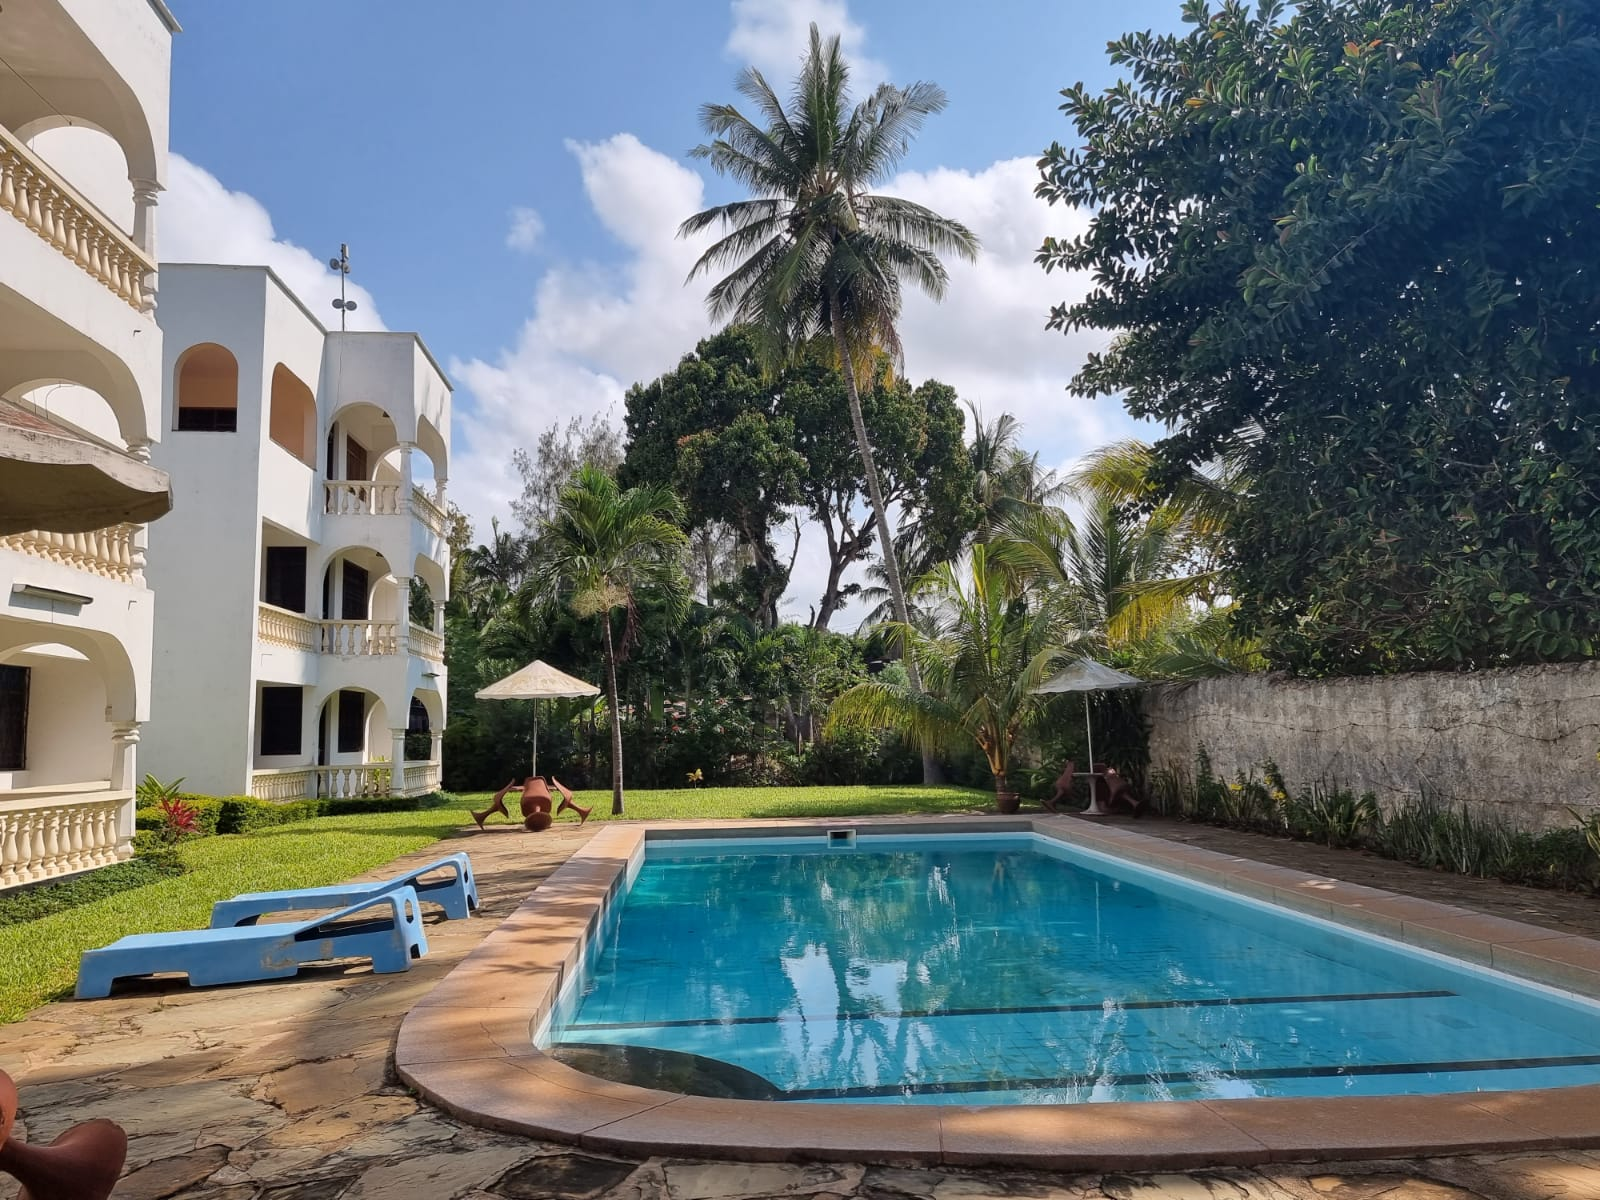 2 br furnished apartment for rent in mtwapa